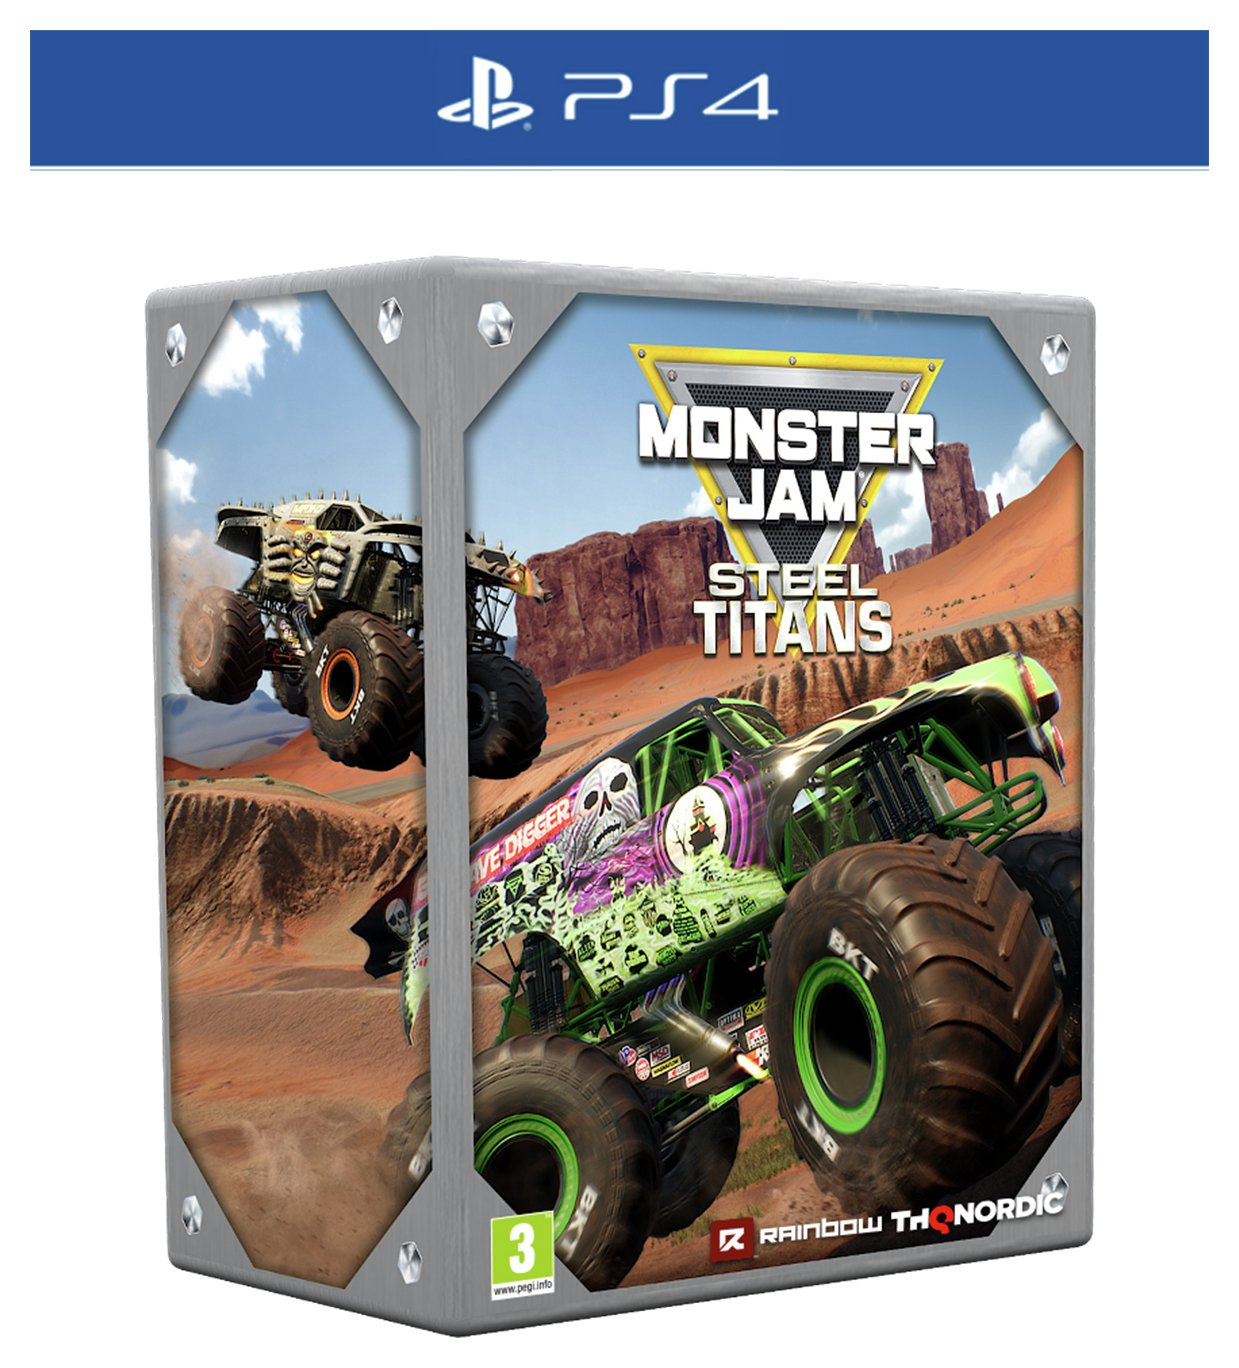 Monster Jam: Steel Titans Collector's Edition PS4 Game